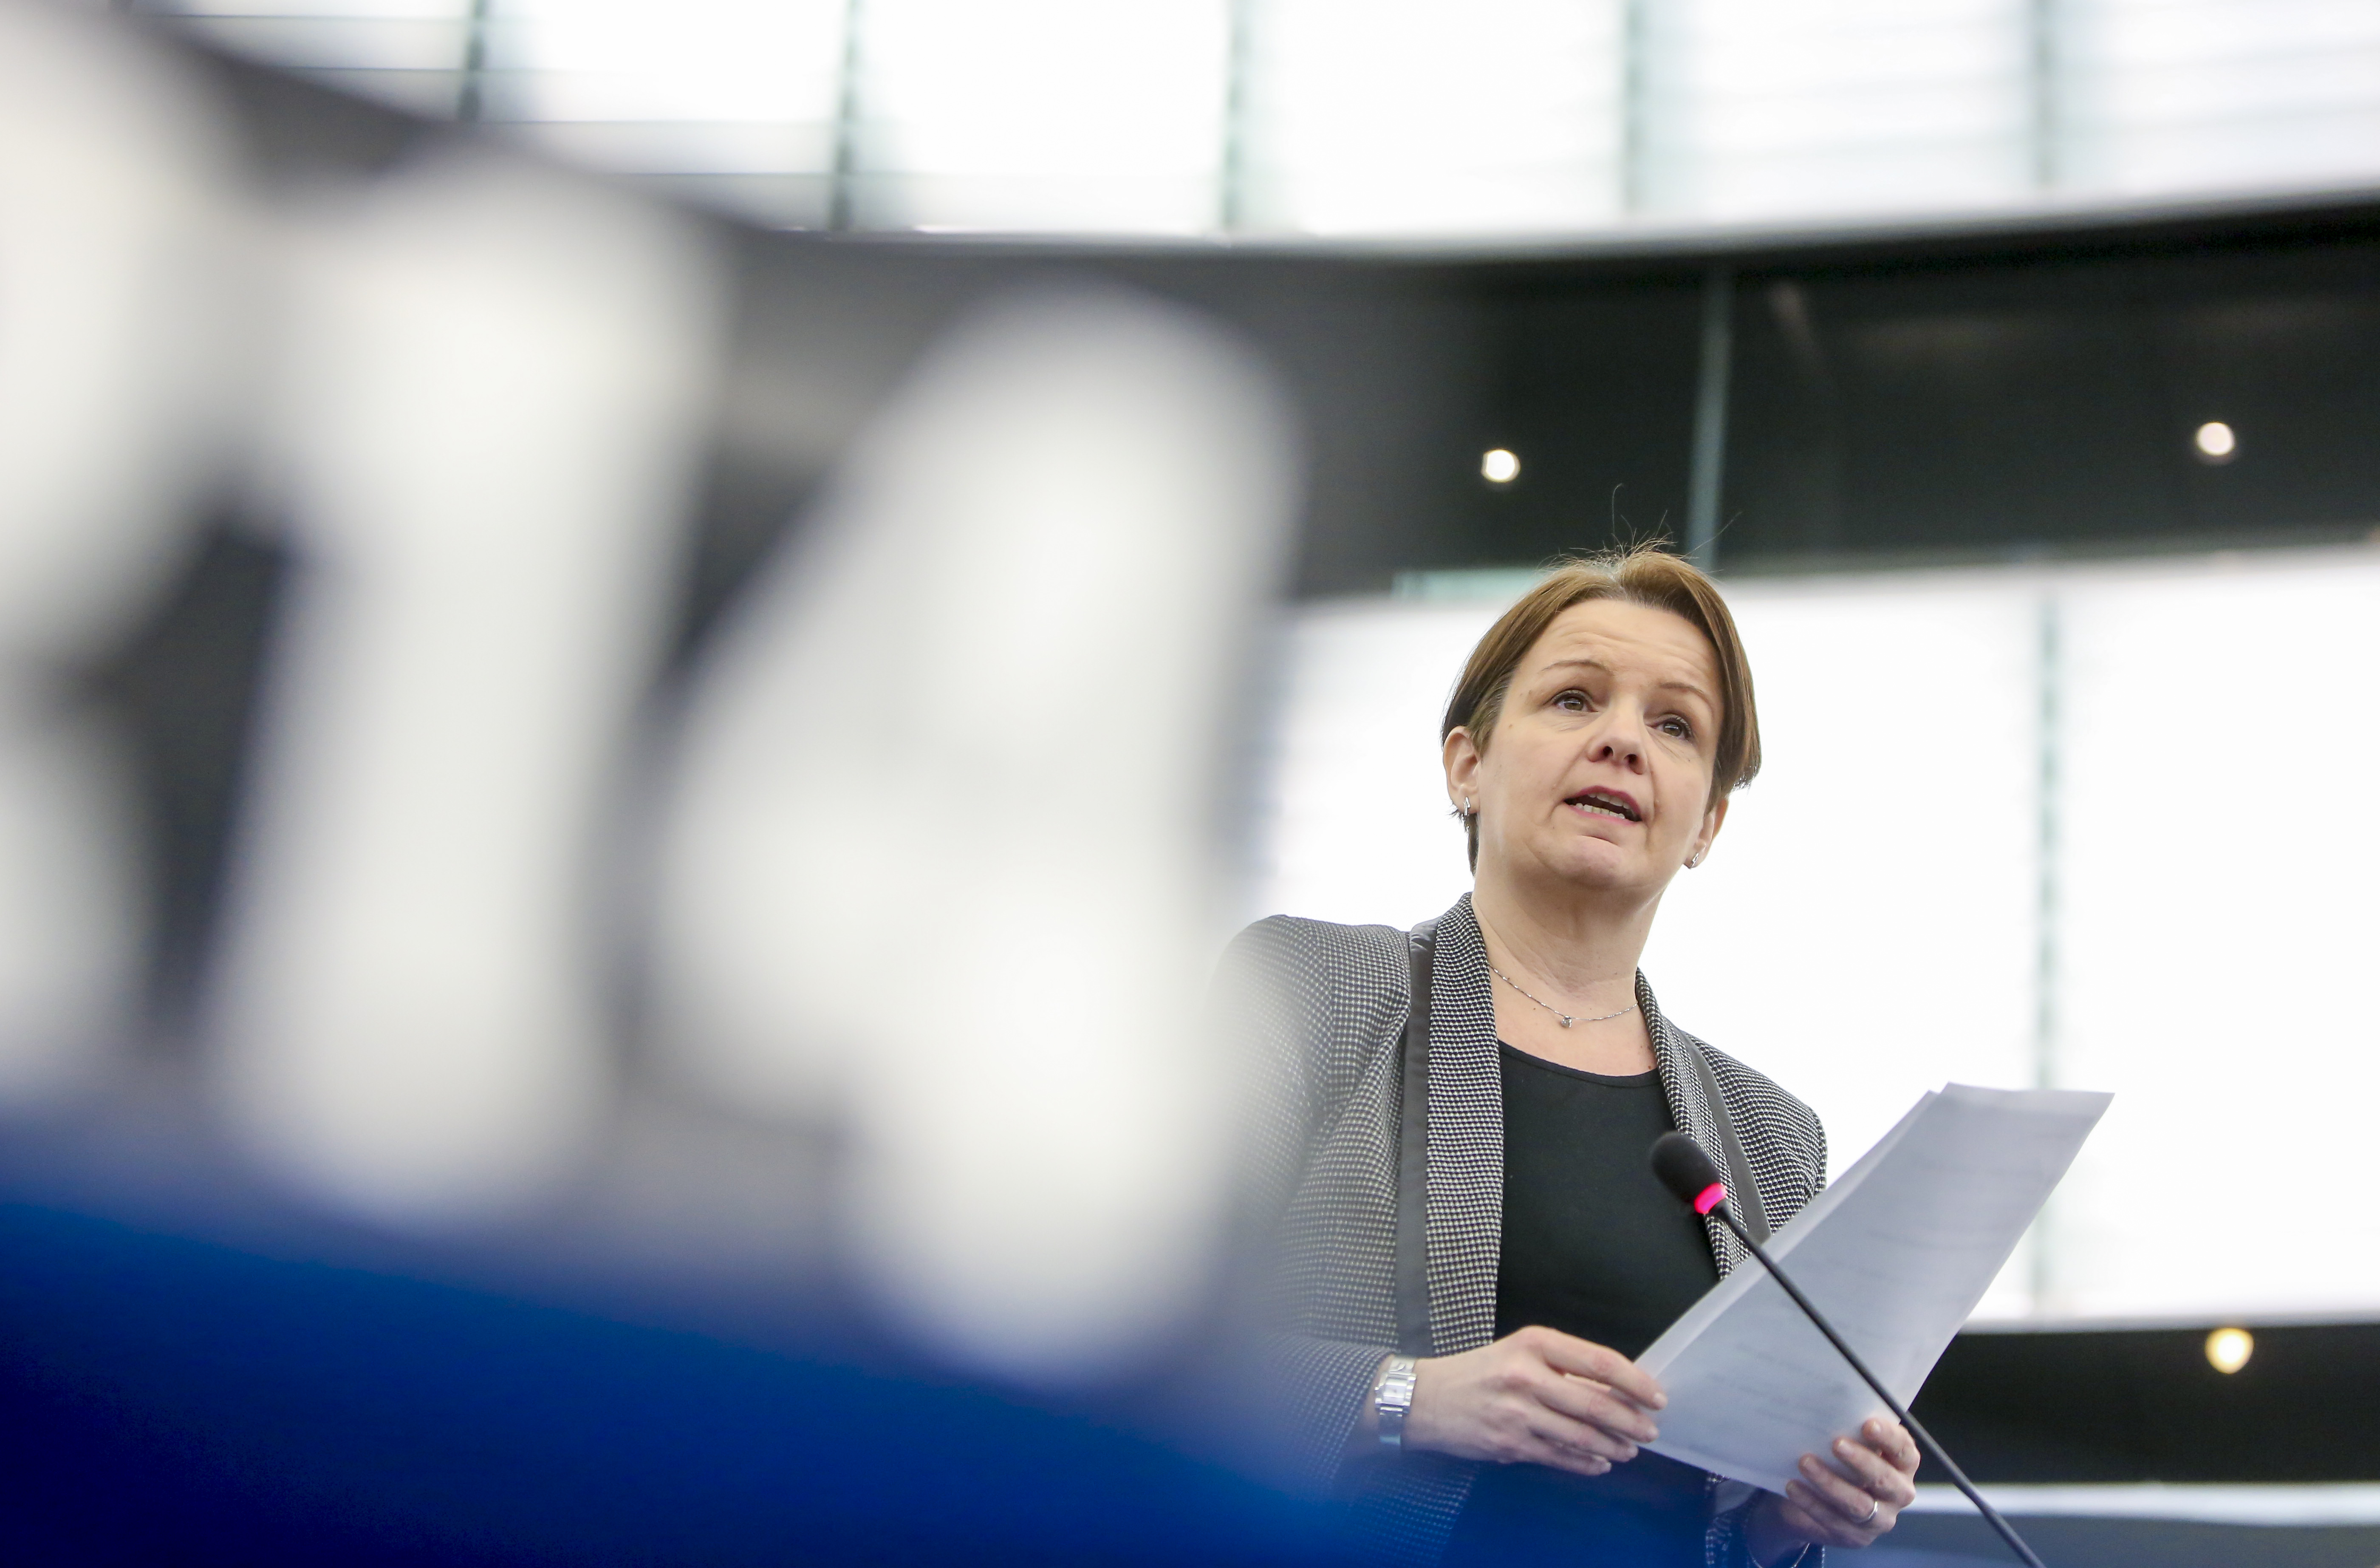 EP Plenary session - European Parliament's position on the Conference on the Future of Europe